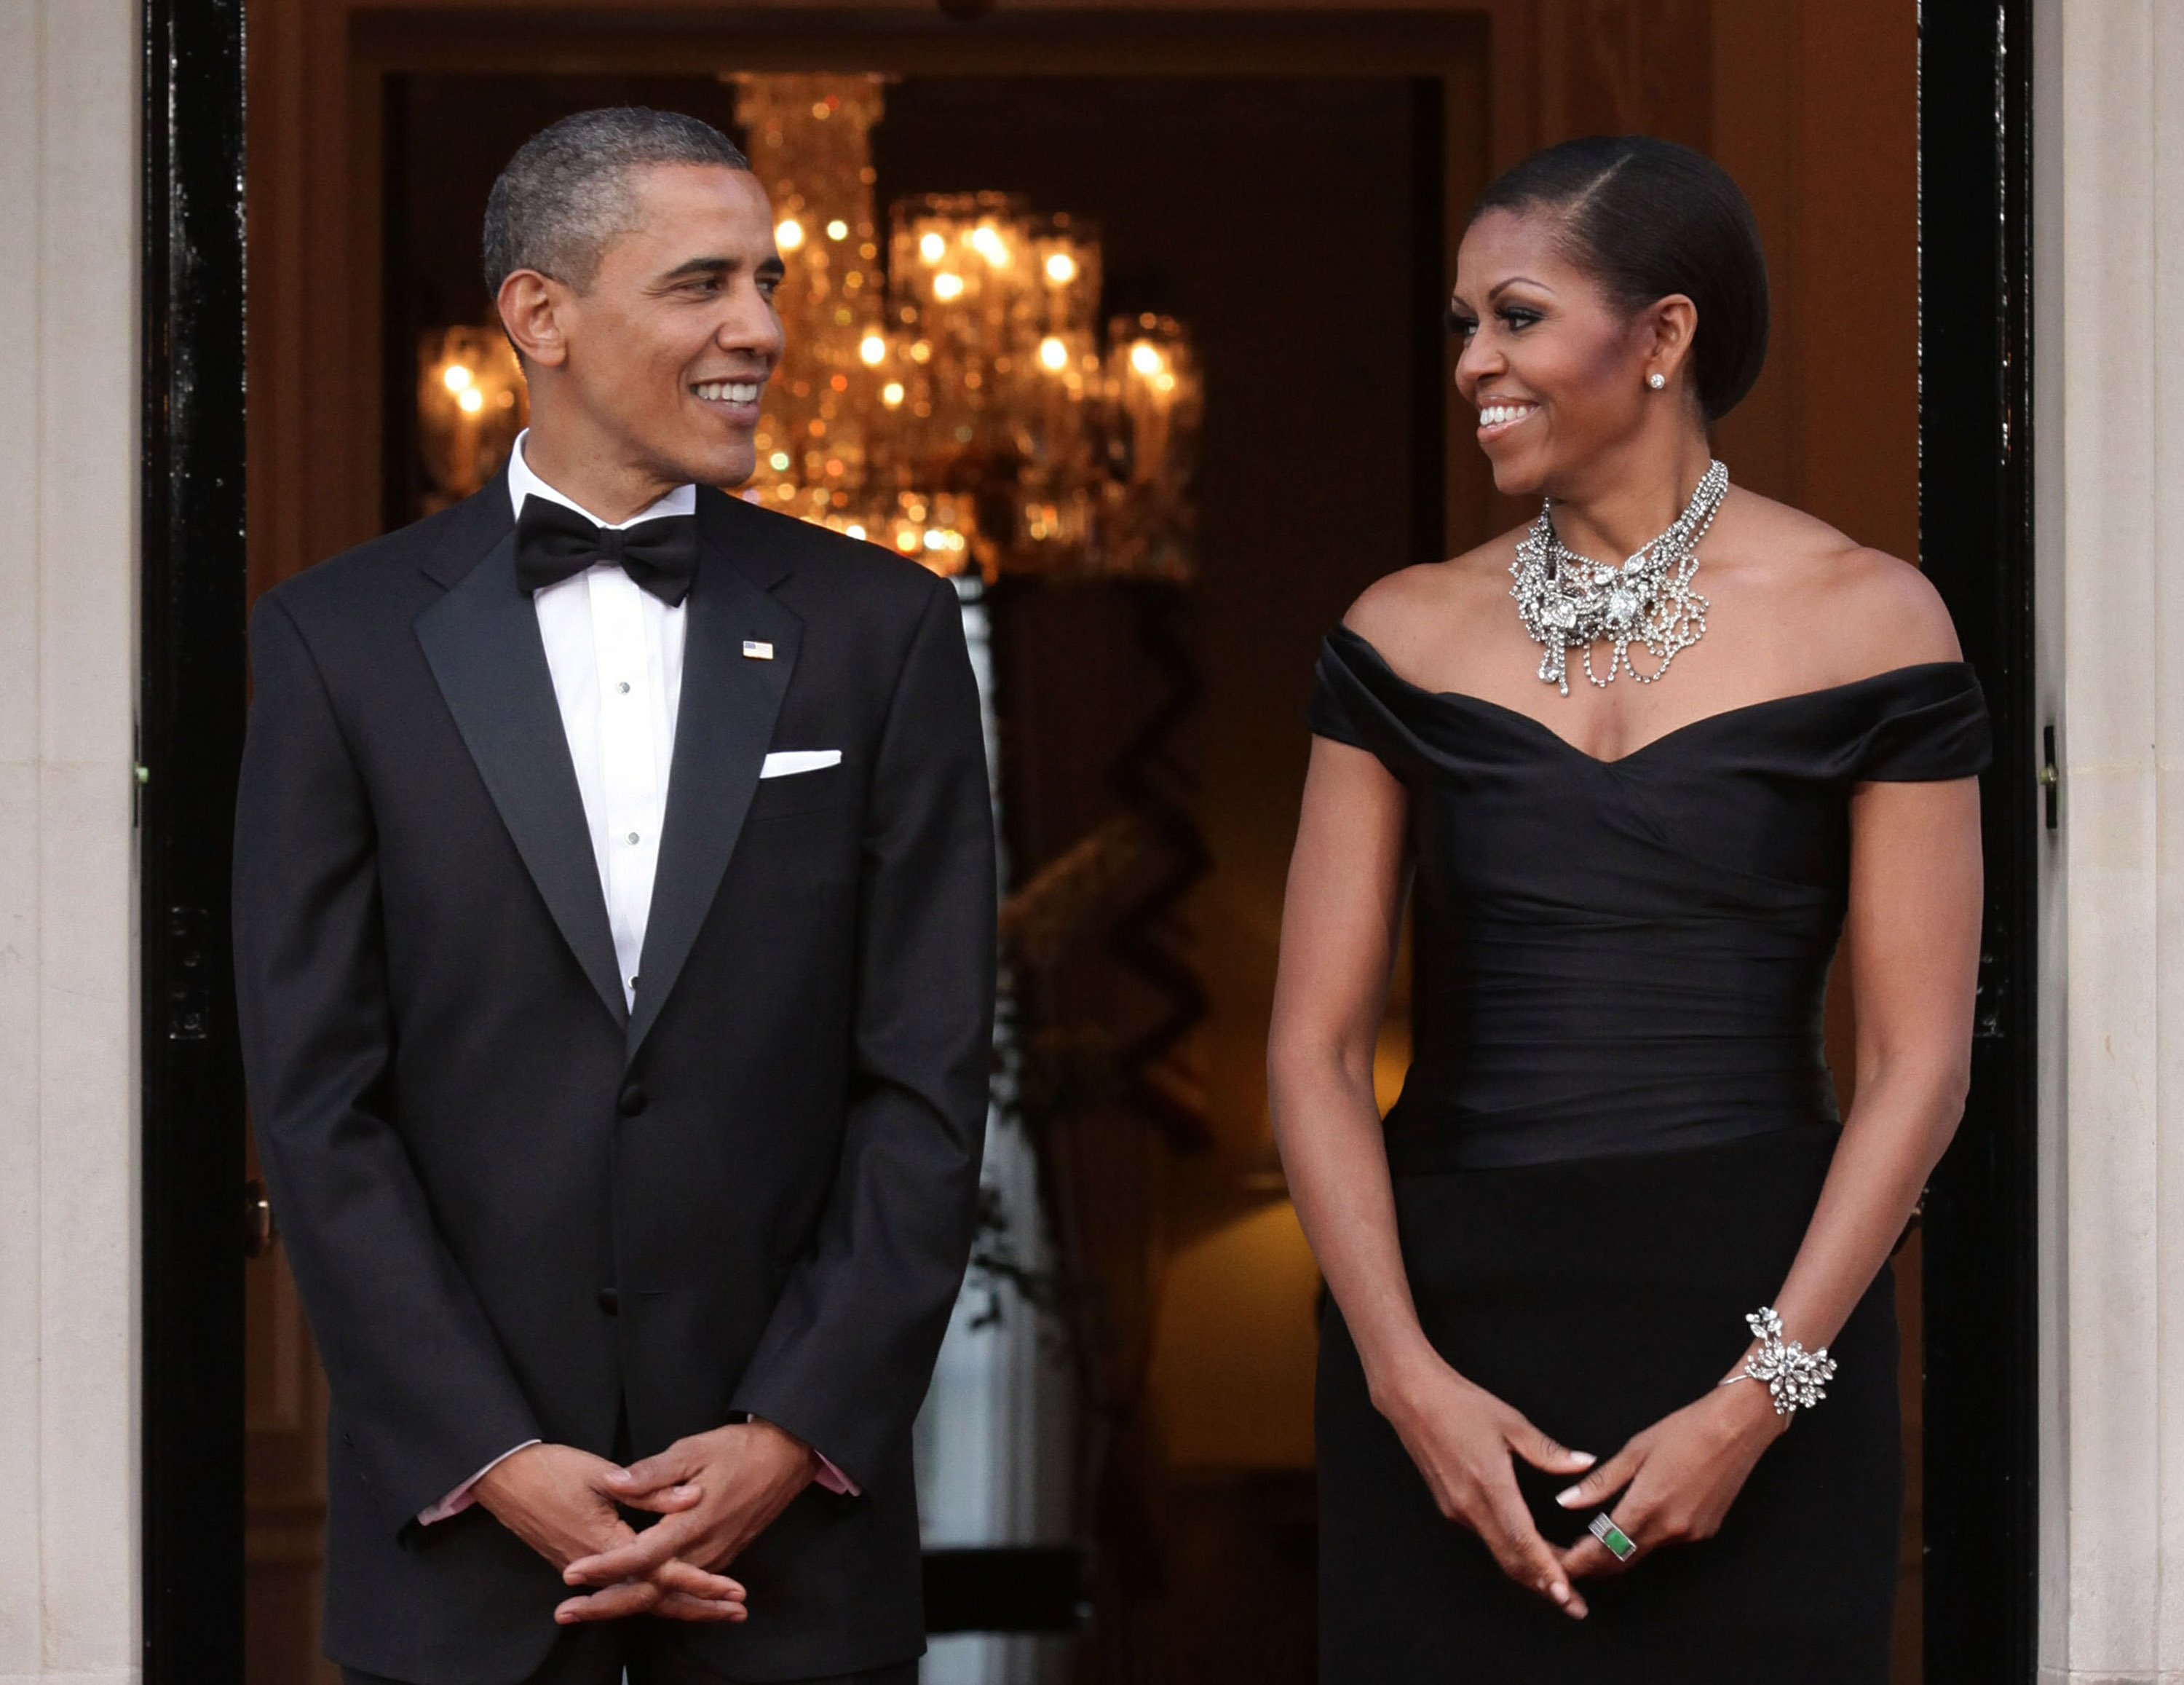 President Barack Obama and First Lady Michelle Obama arrive at Winfield House, the residence of the Ambassador of the United States of America, in Regent's Park, on May 25, 2011, in London, England l Source: Getty Images